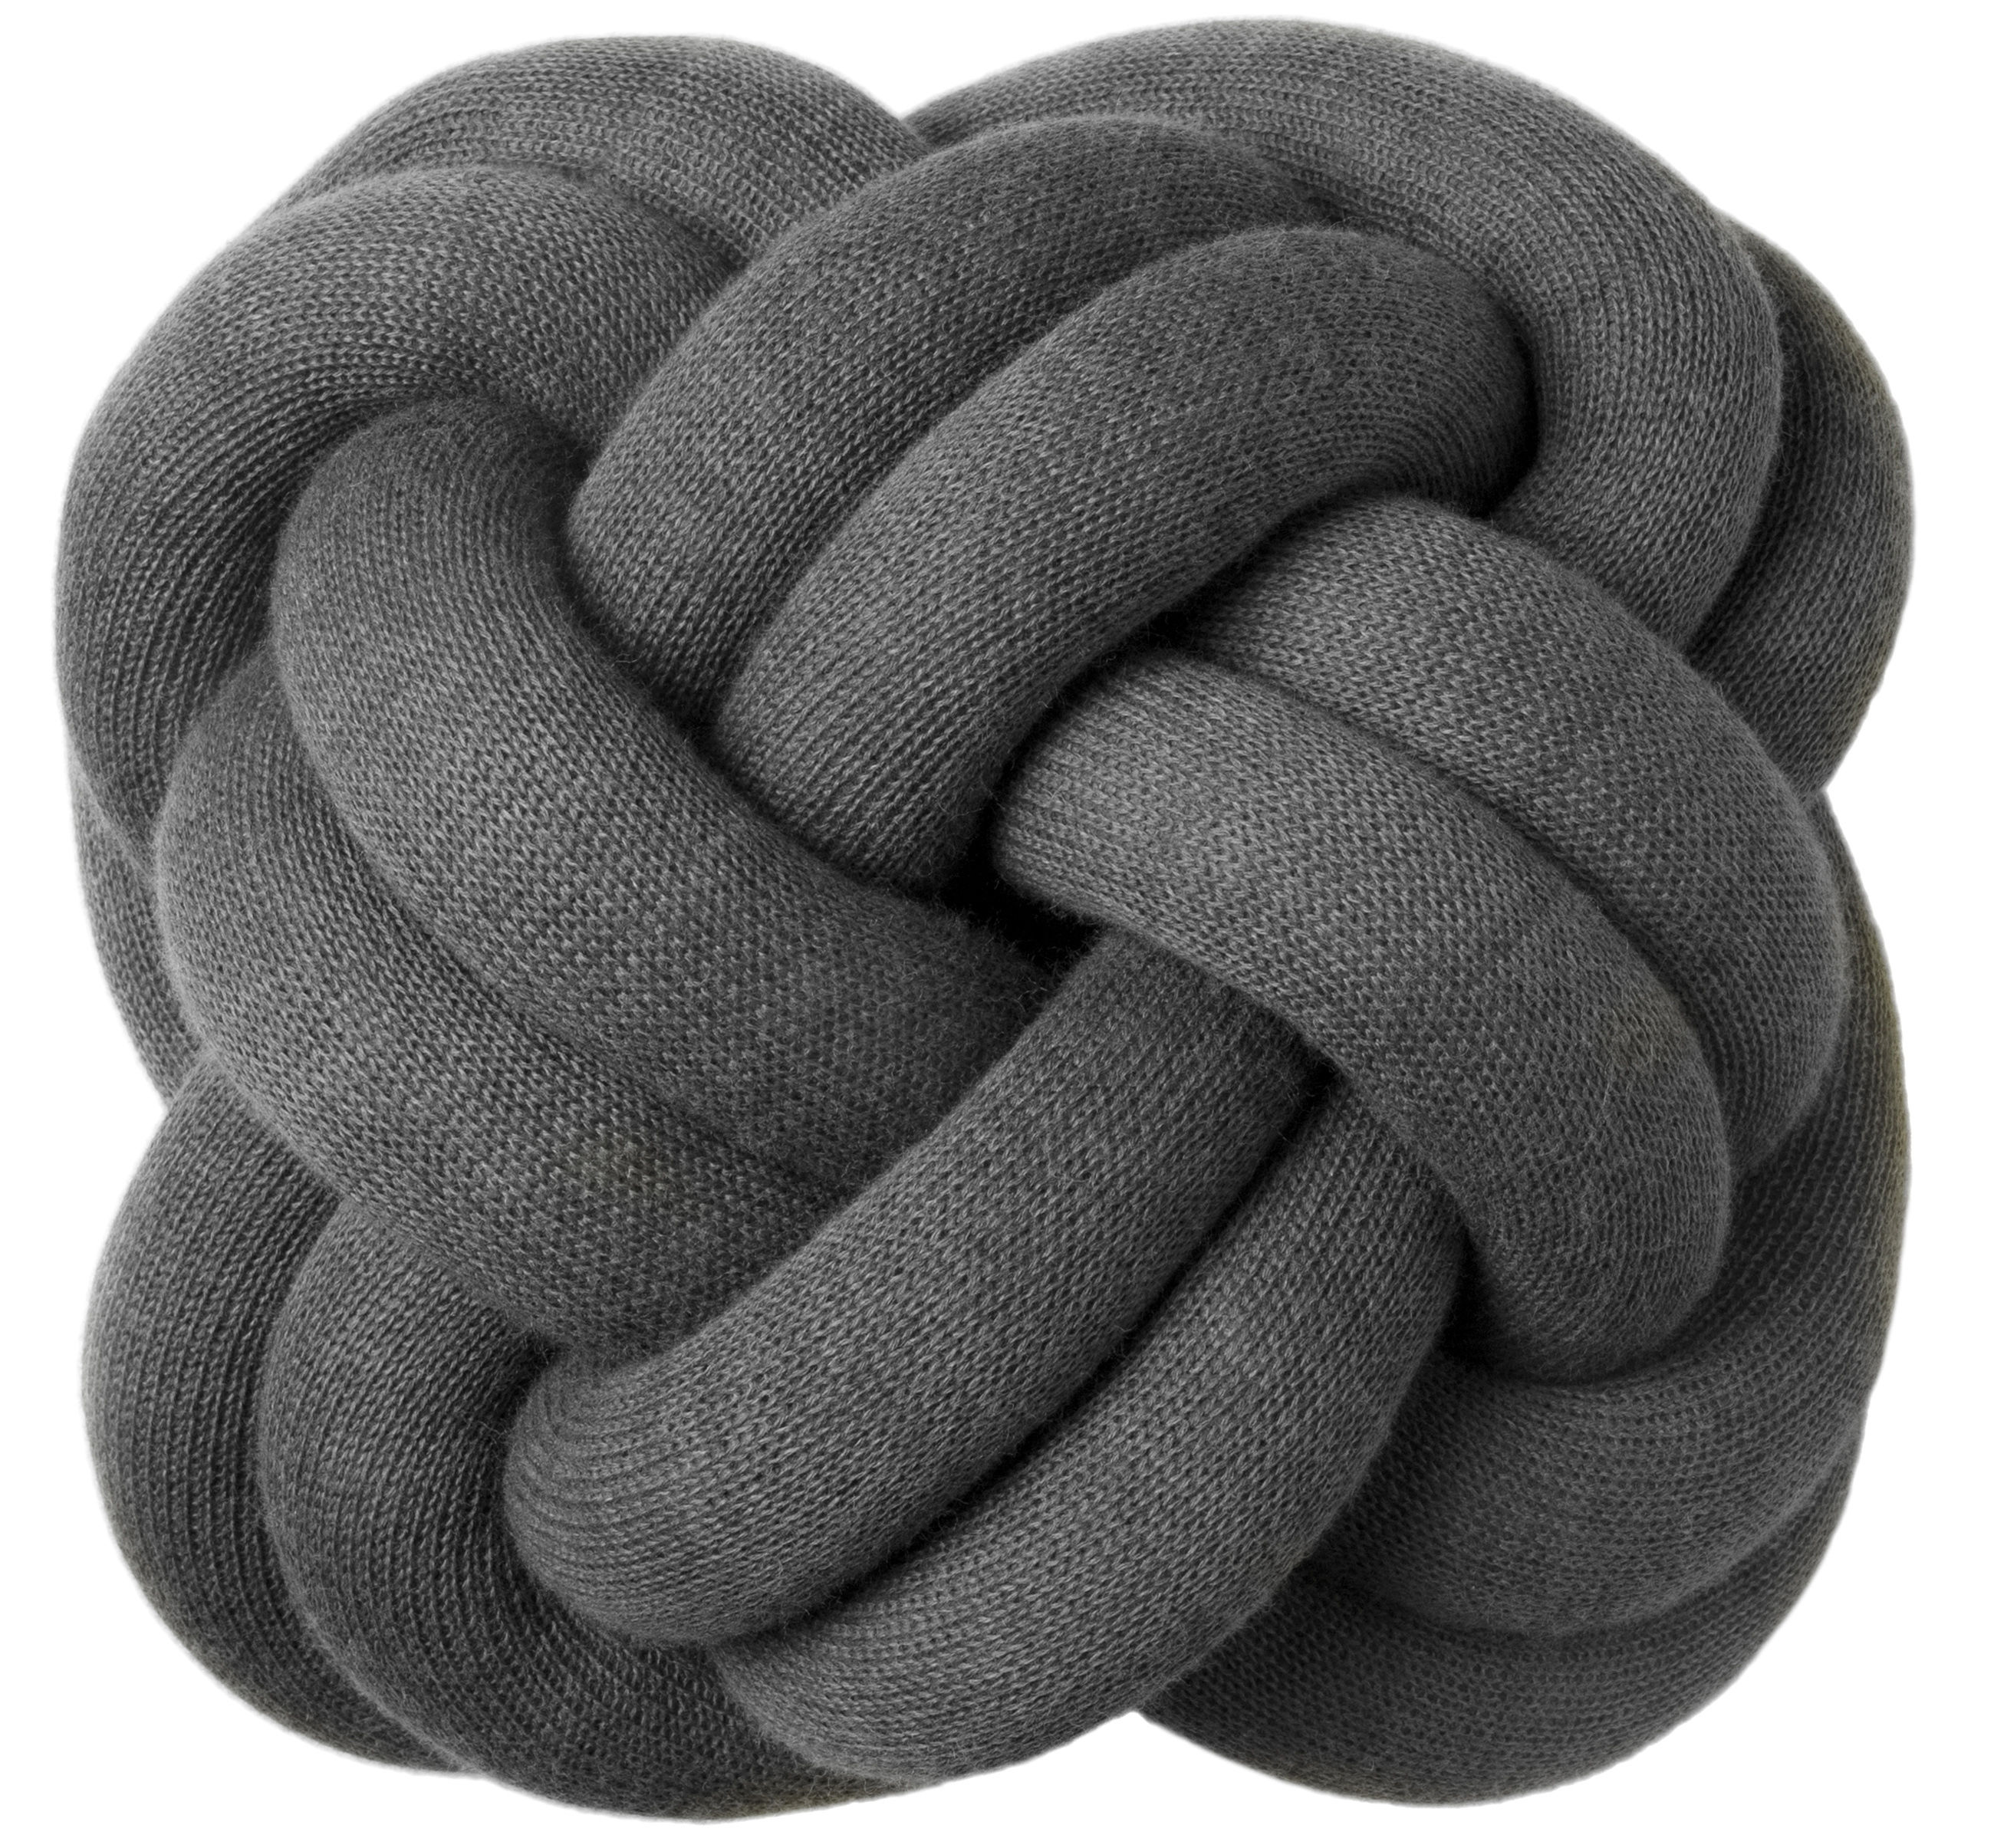 Decoration - Cushions & Poufs - Knot Cushion by Design House Stockholm - Dark grey - Fabric